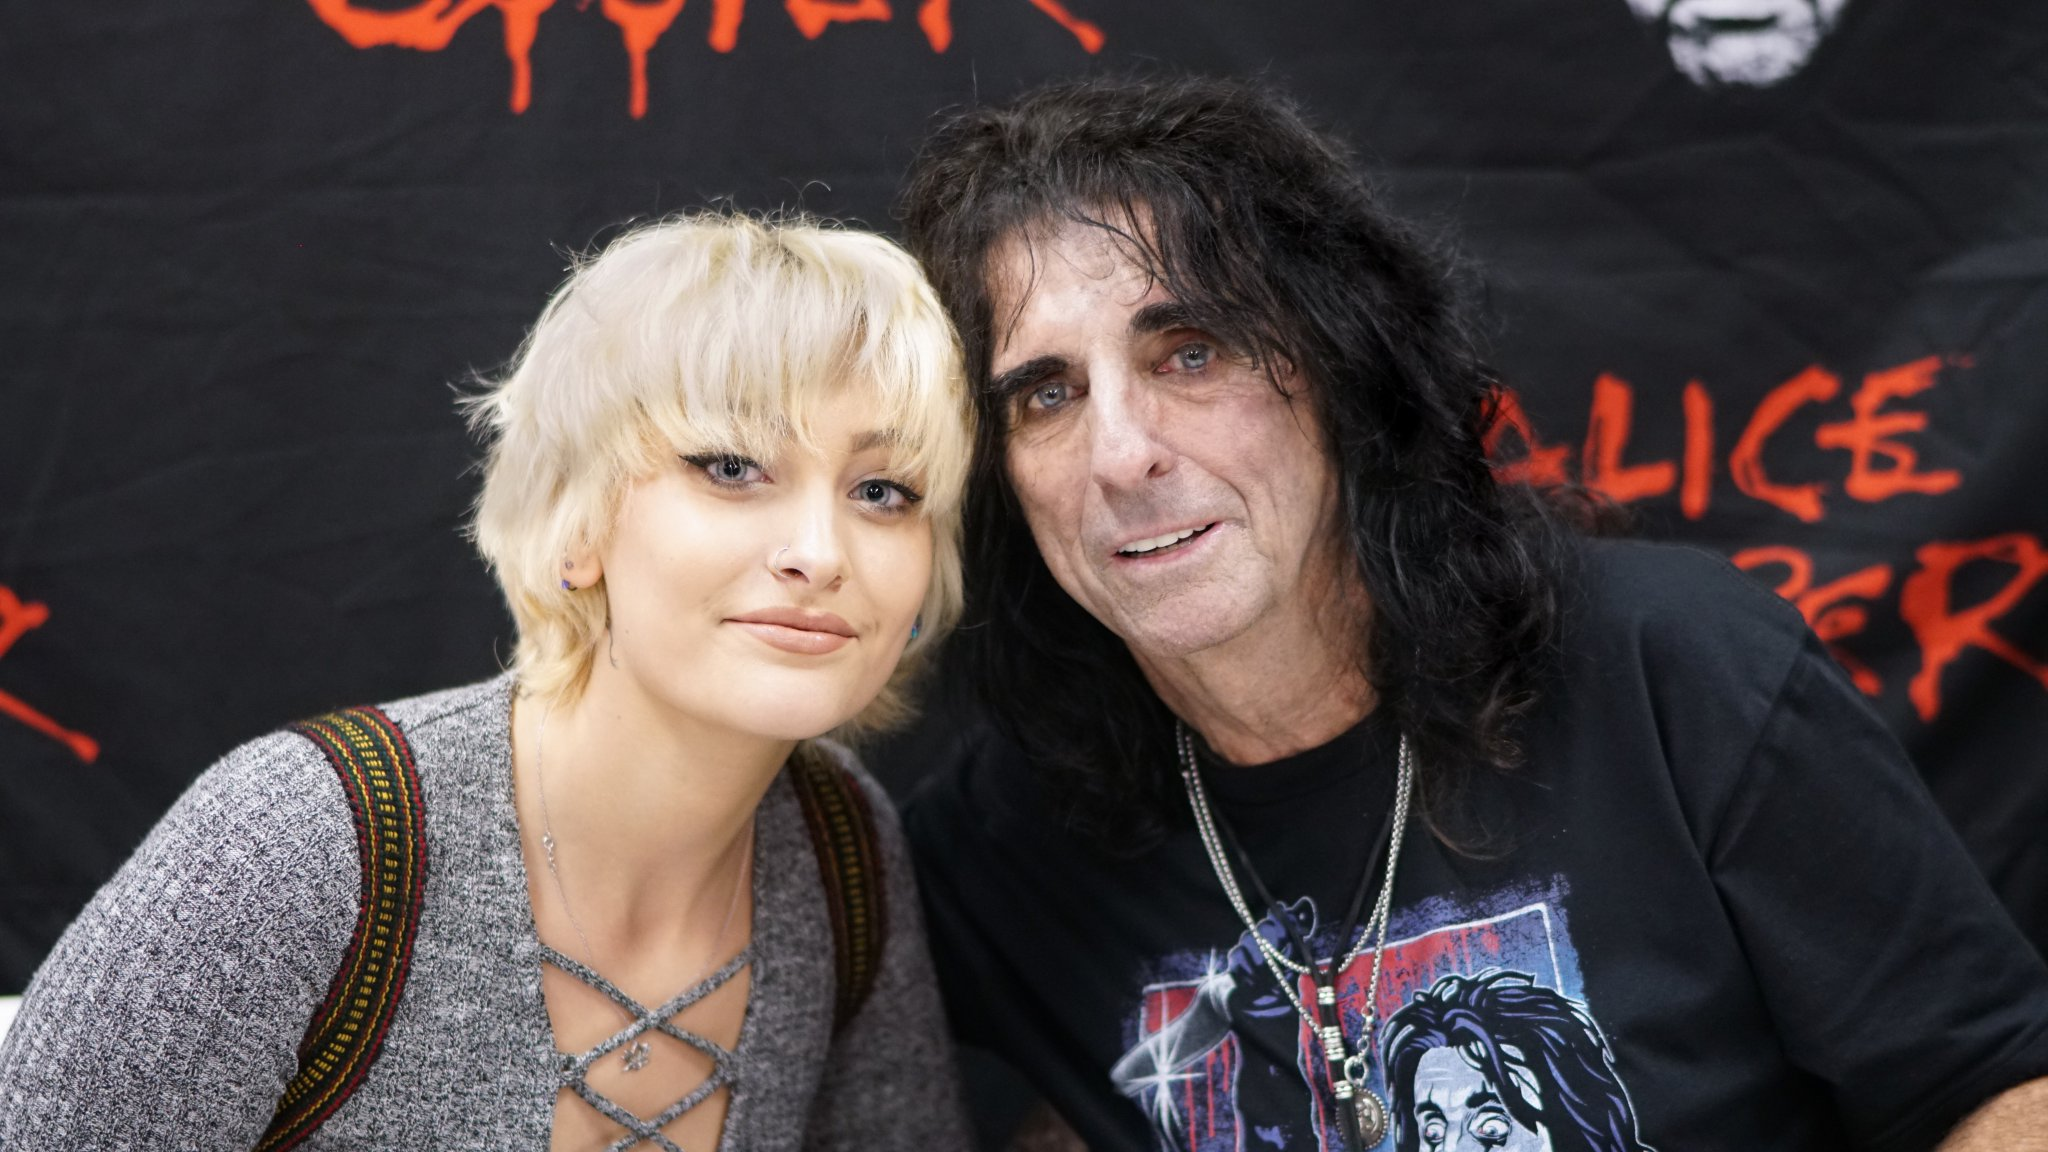 paris jackson and alice cooper meeting backstage in hollywood at alice coopers 2016 halloween concert photo by kyler clark cerealkyler photography